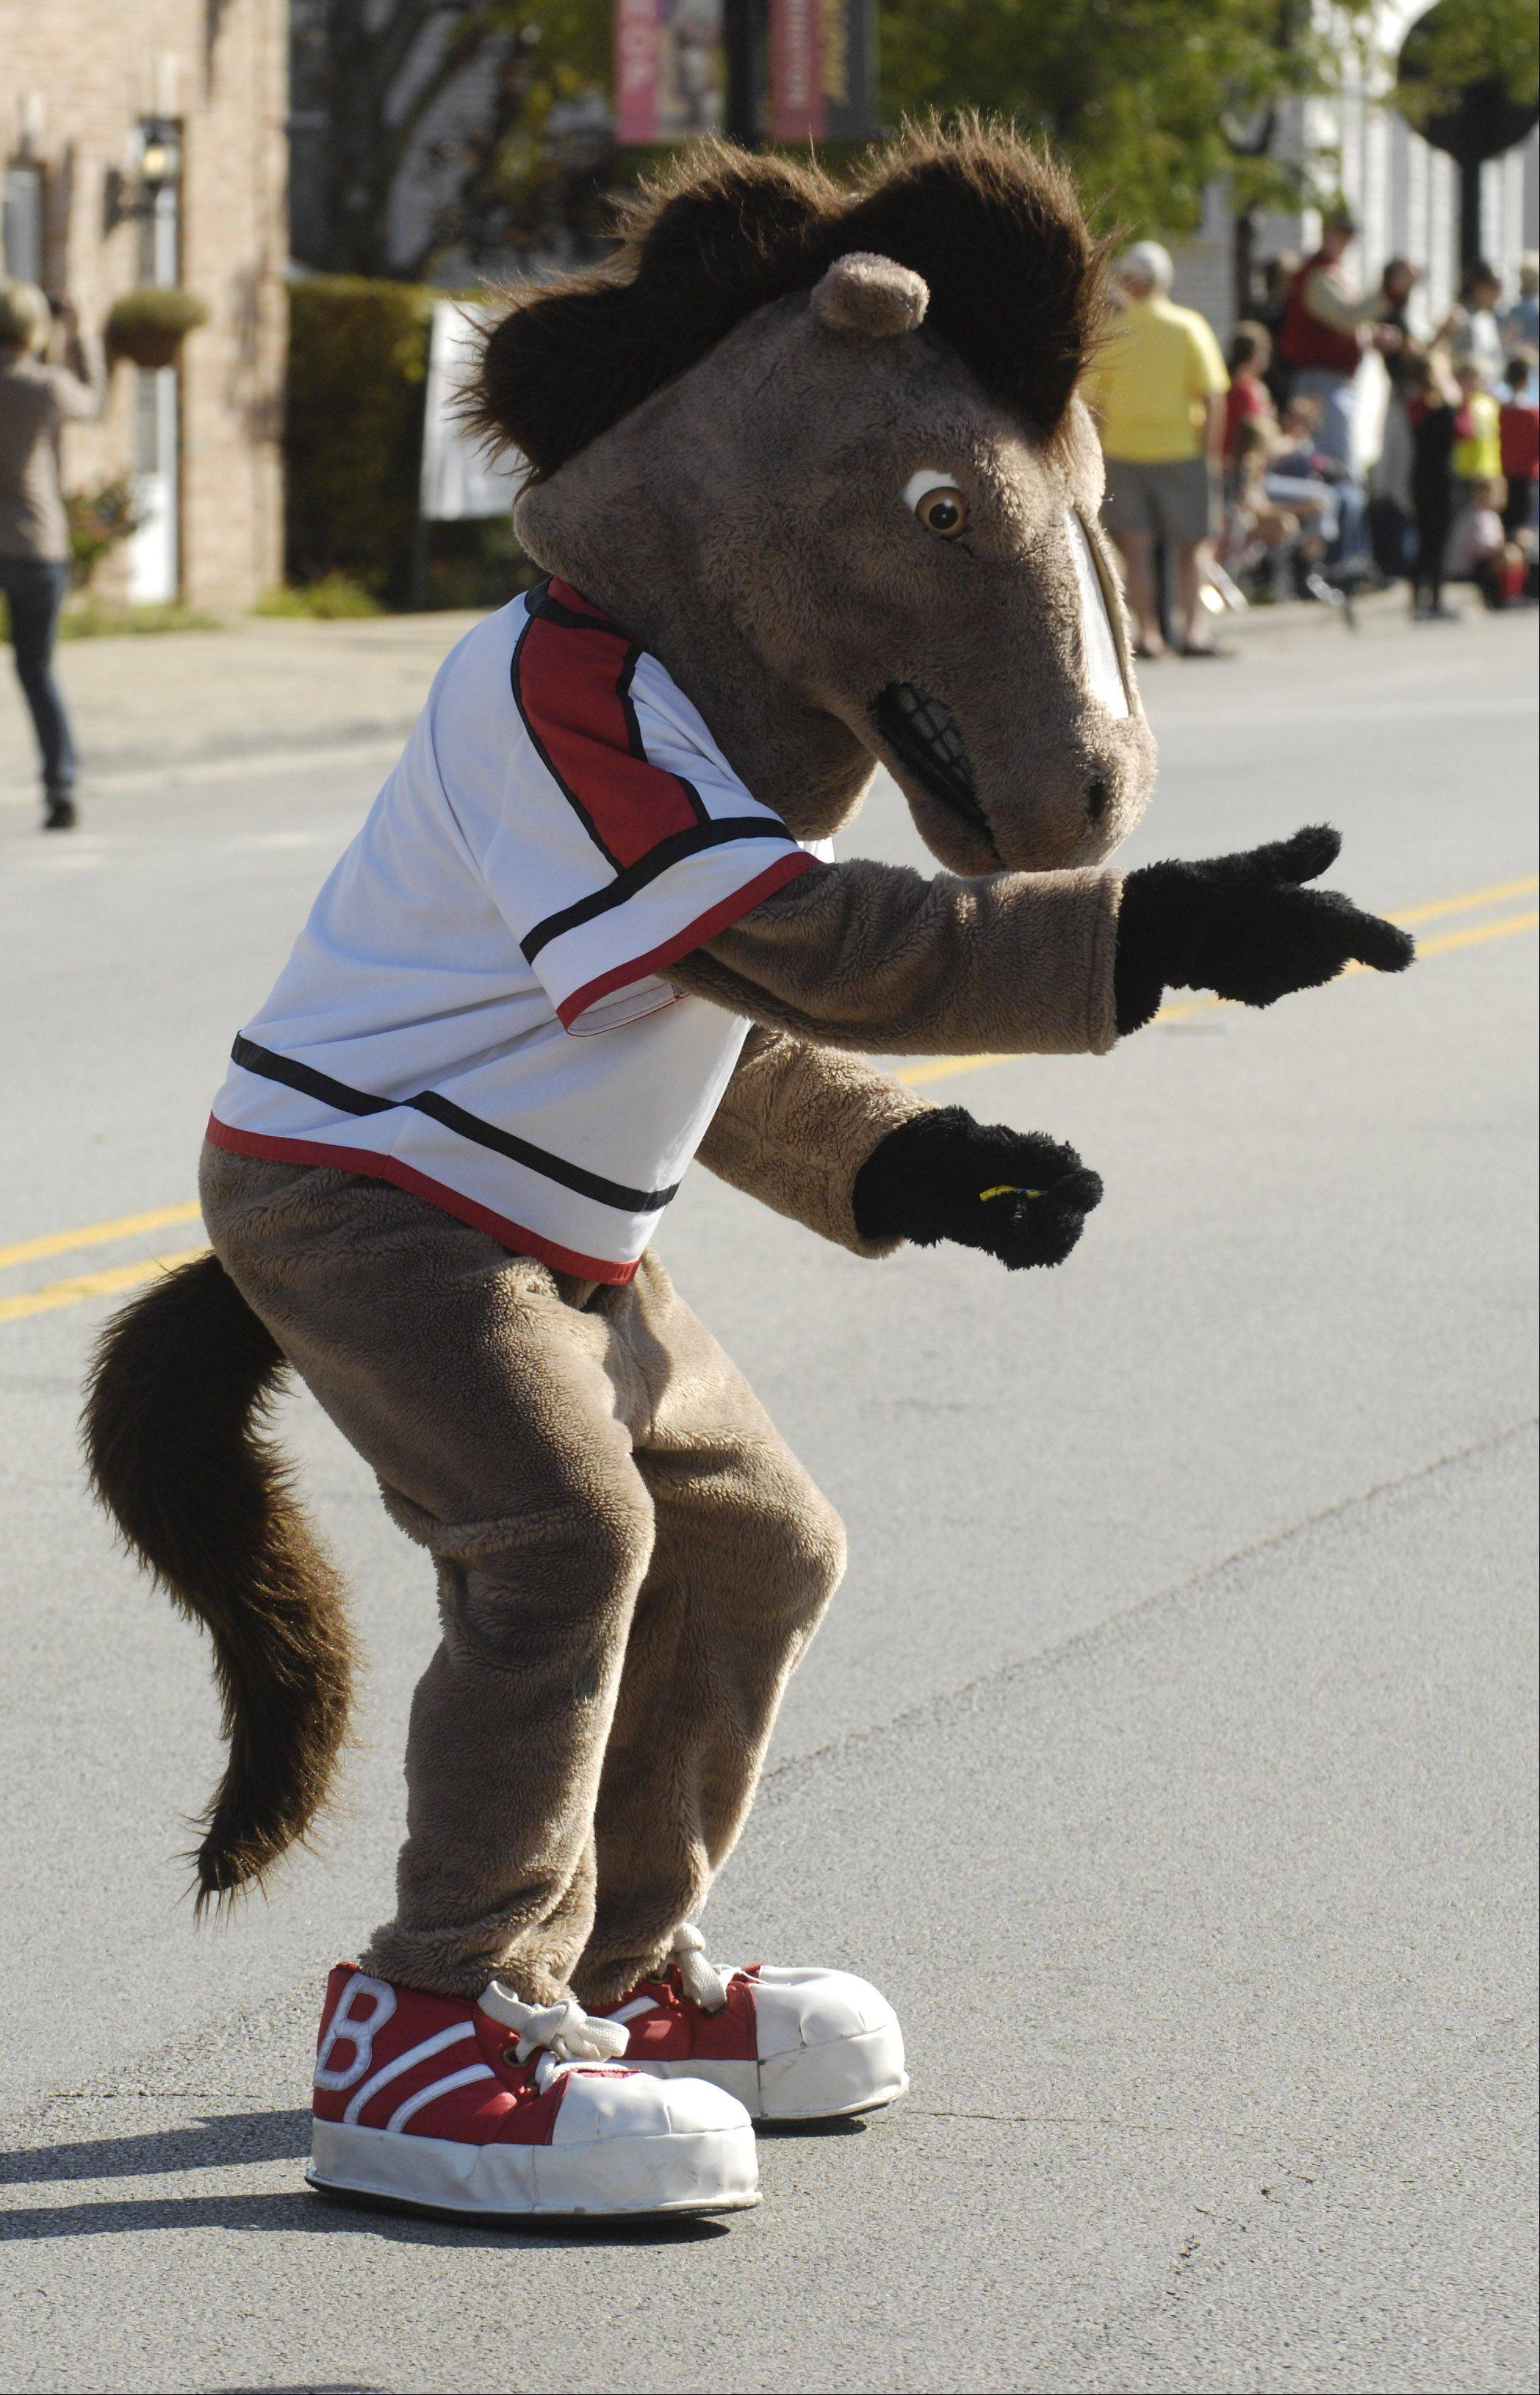 The Bronco mascot entertains children during the Barrington High School homecoming parade route Saturday.